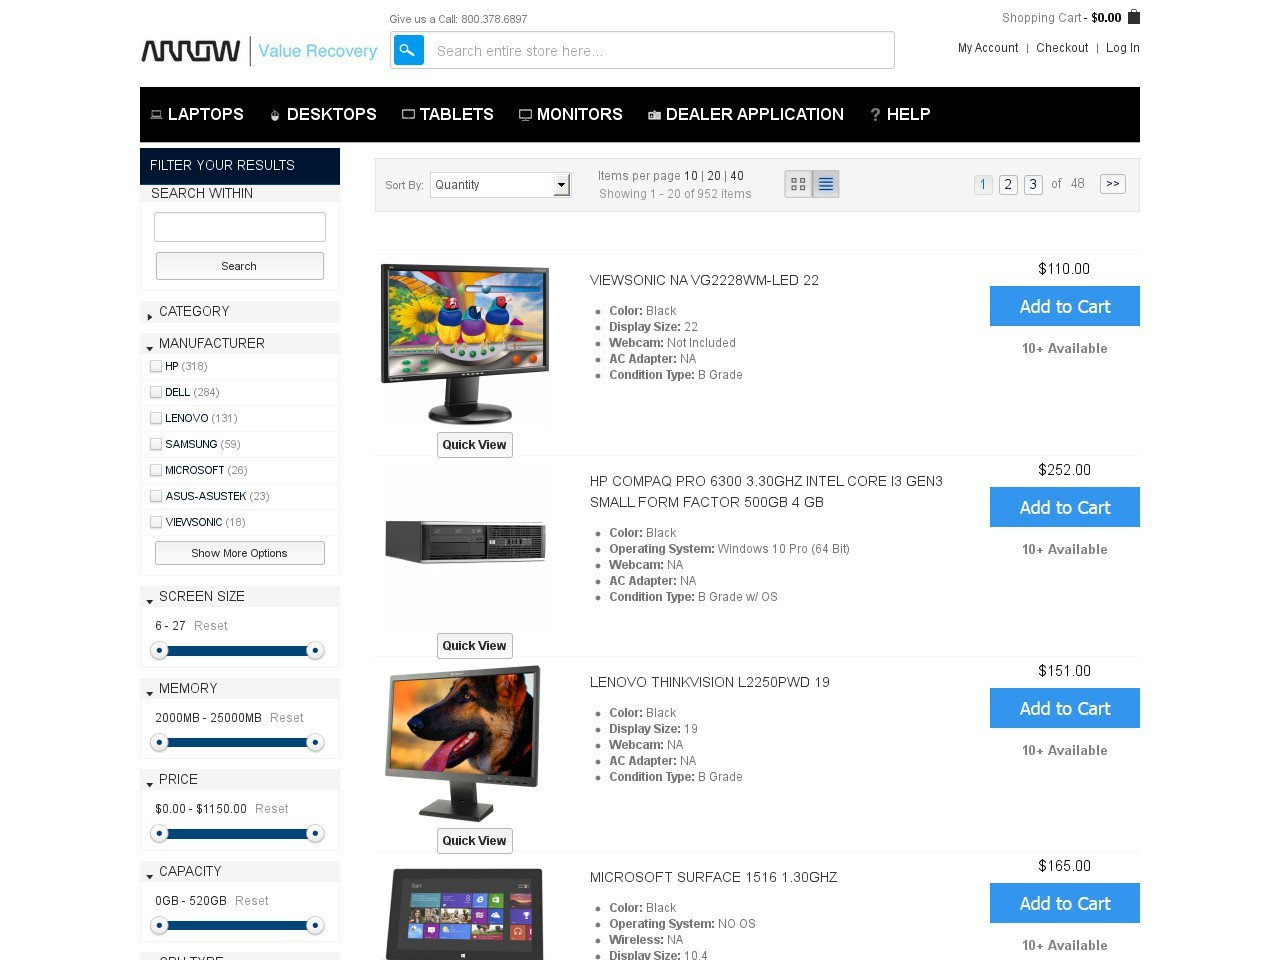 Bargain - Extra 33% OFF - Selected Refurbished Desktop PCs @ Arrow Direct